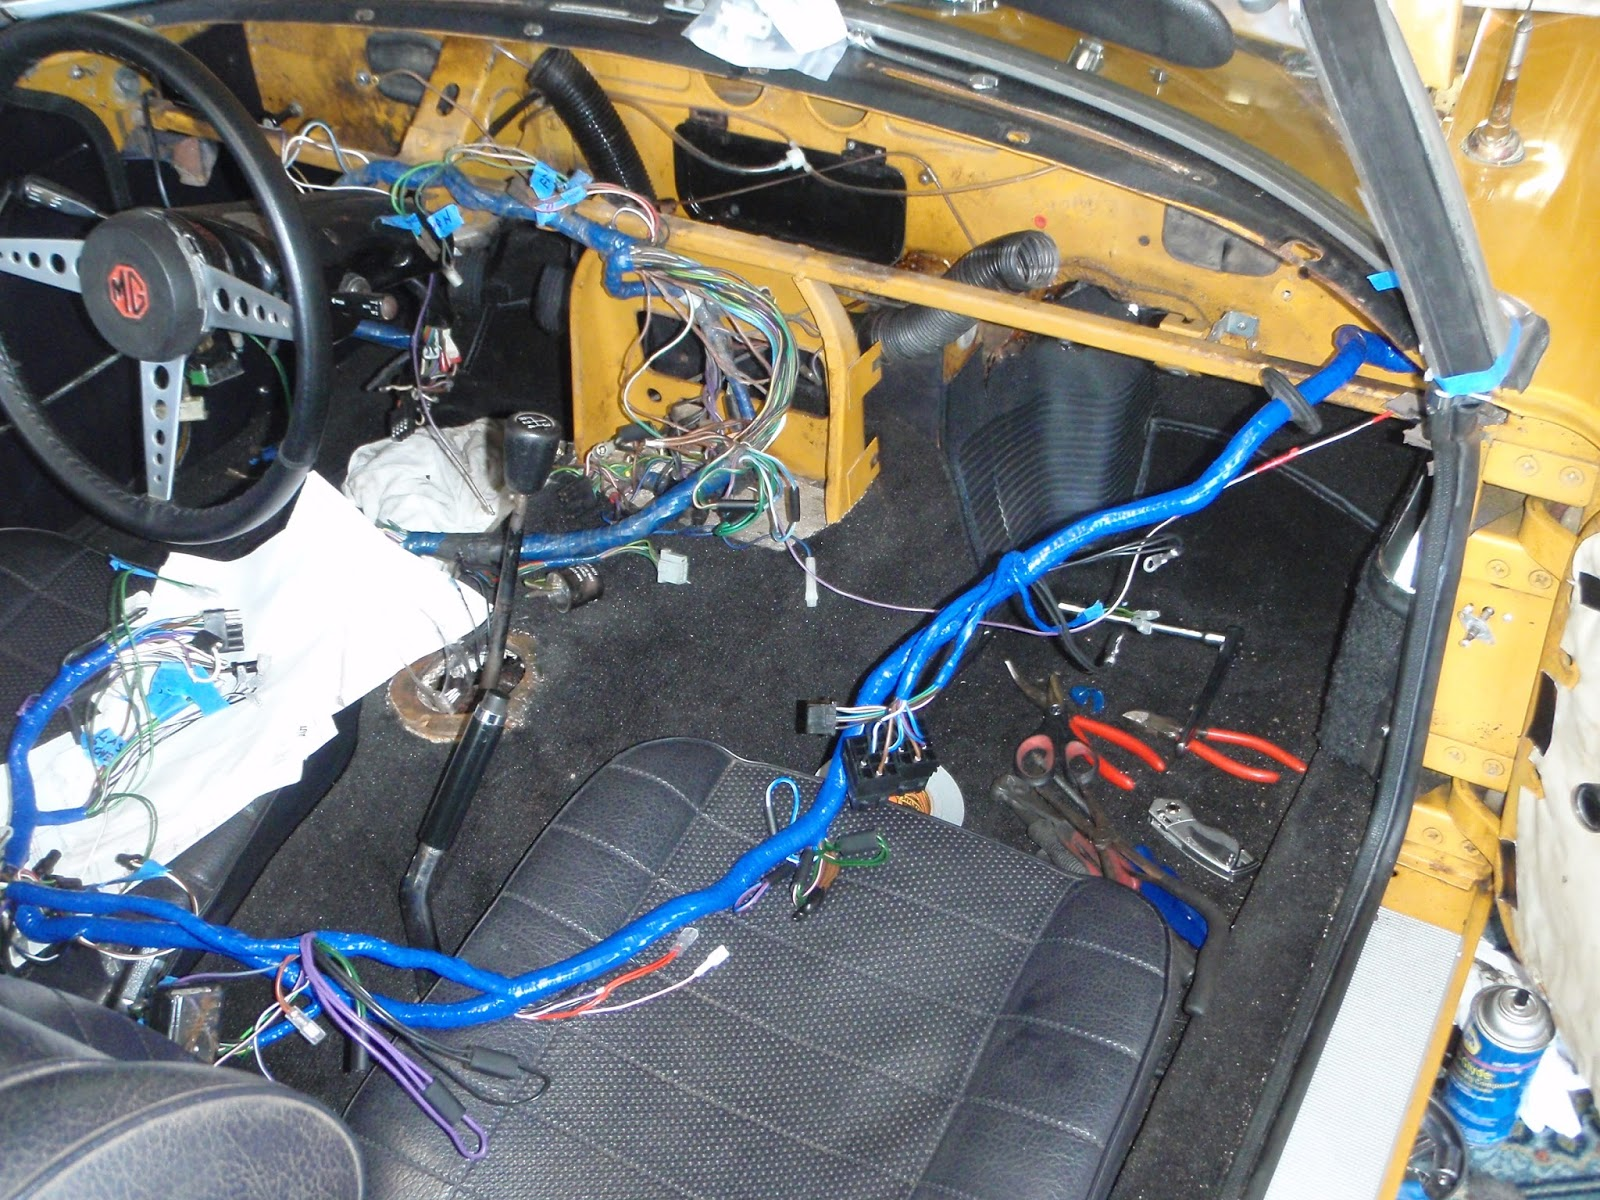 Mgb Wiring Harness Tape : Mgb in the garage new wiring harness vinyl top